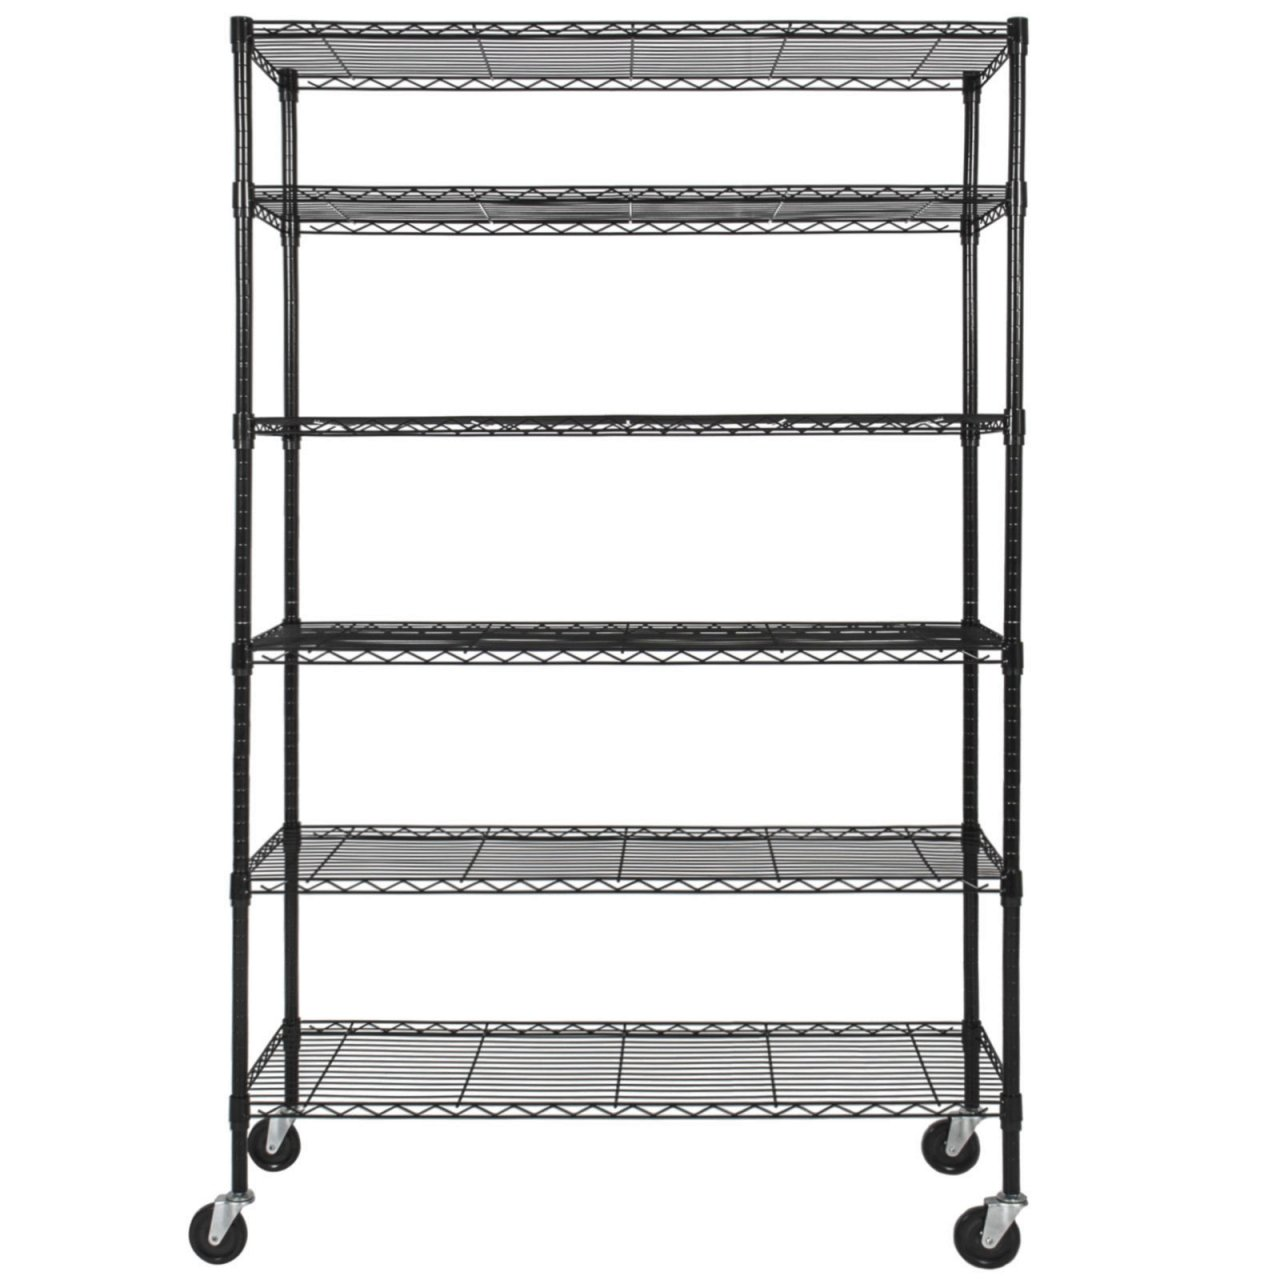 Durable Constructed 6-Tier Steel Shelving Storage Organizer Adjustable With Castor Wheels - Black Finish #1145 by Koonlert@shop (Image #2)